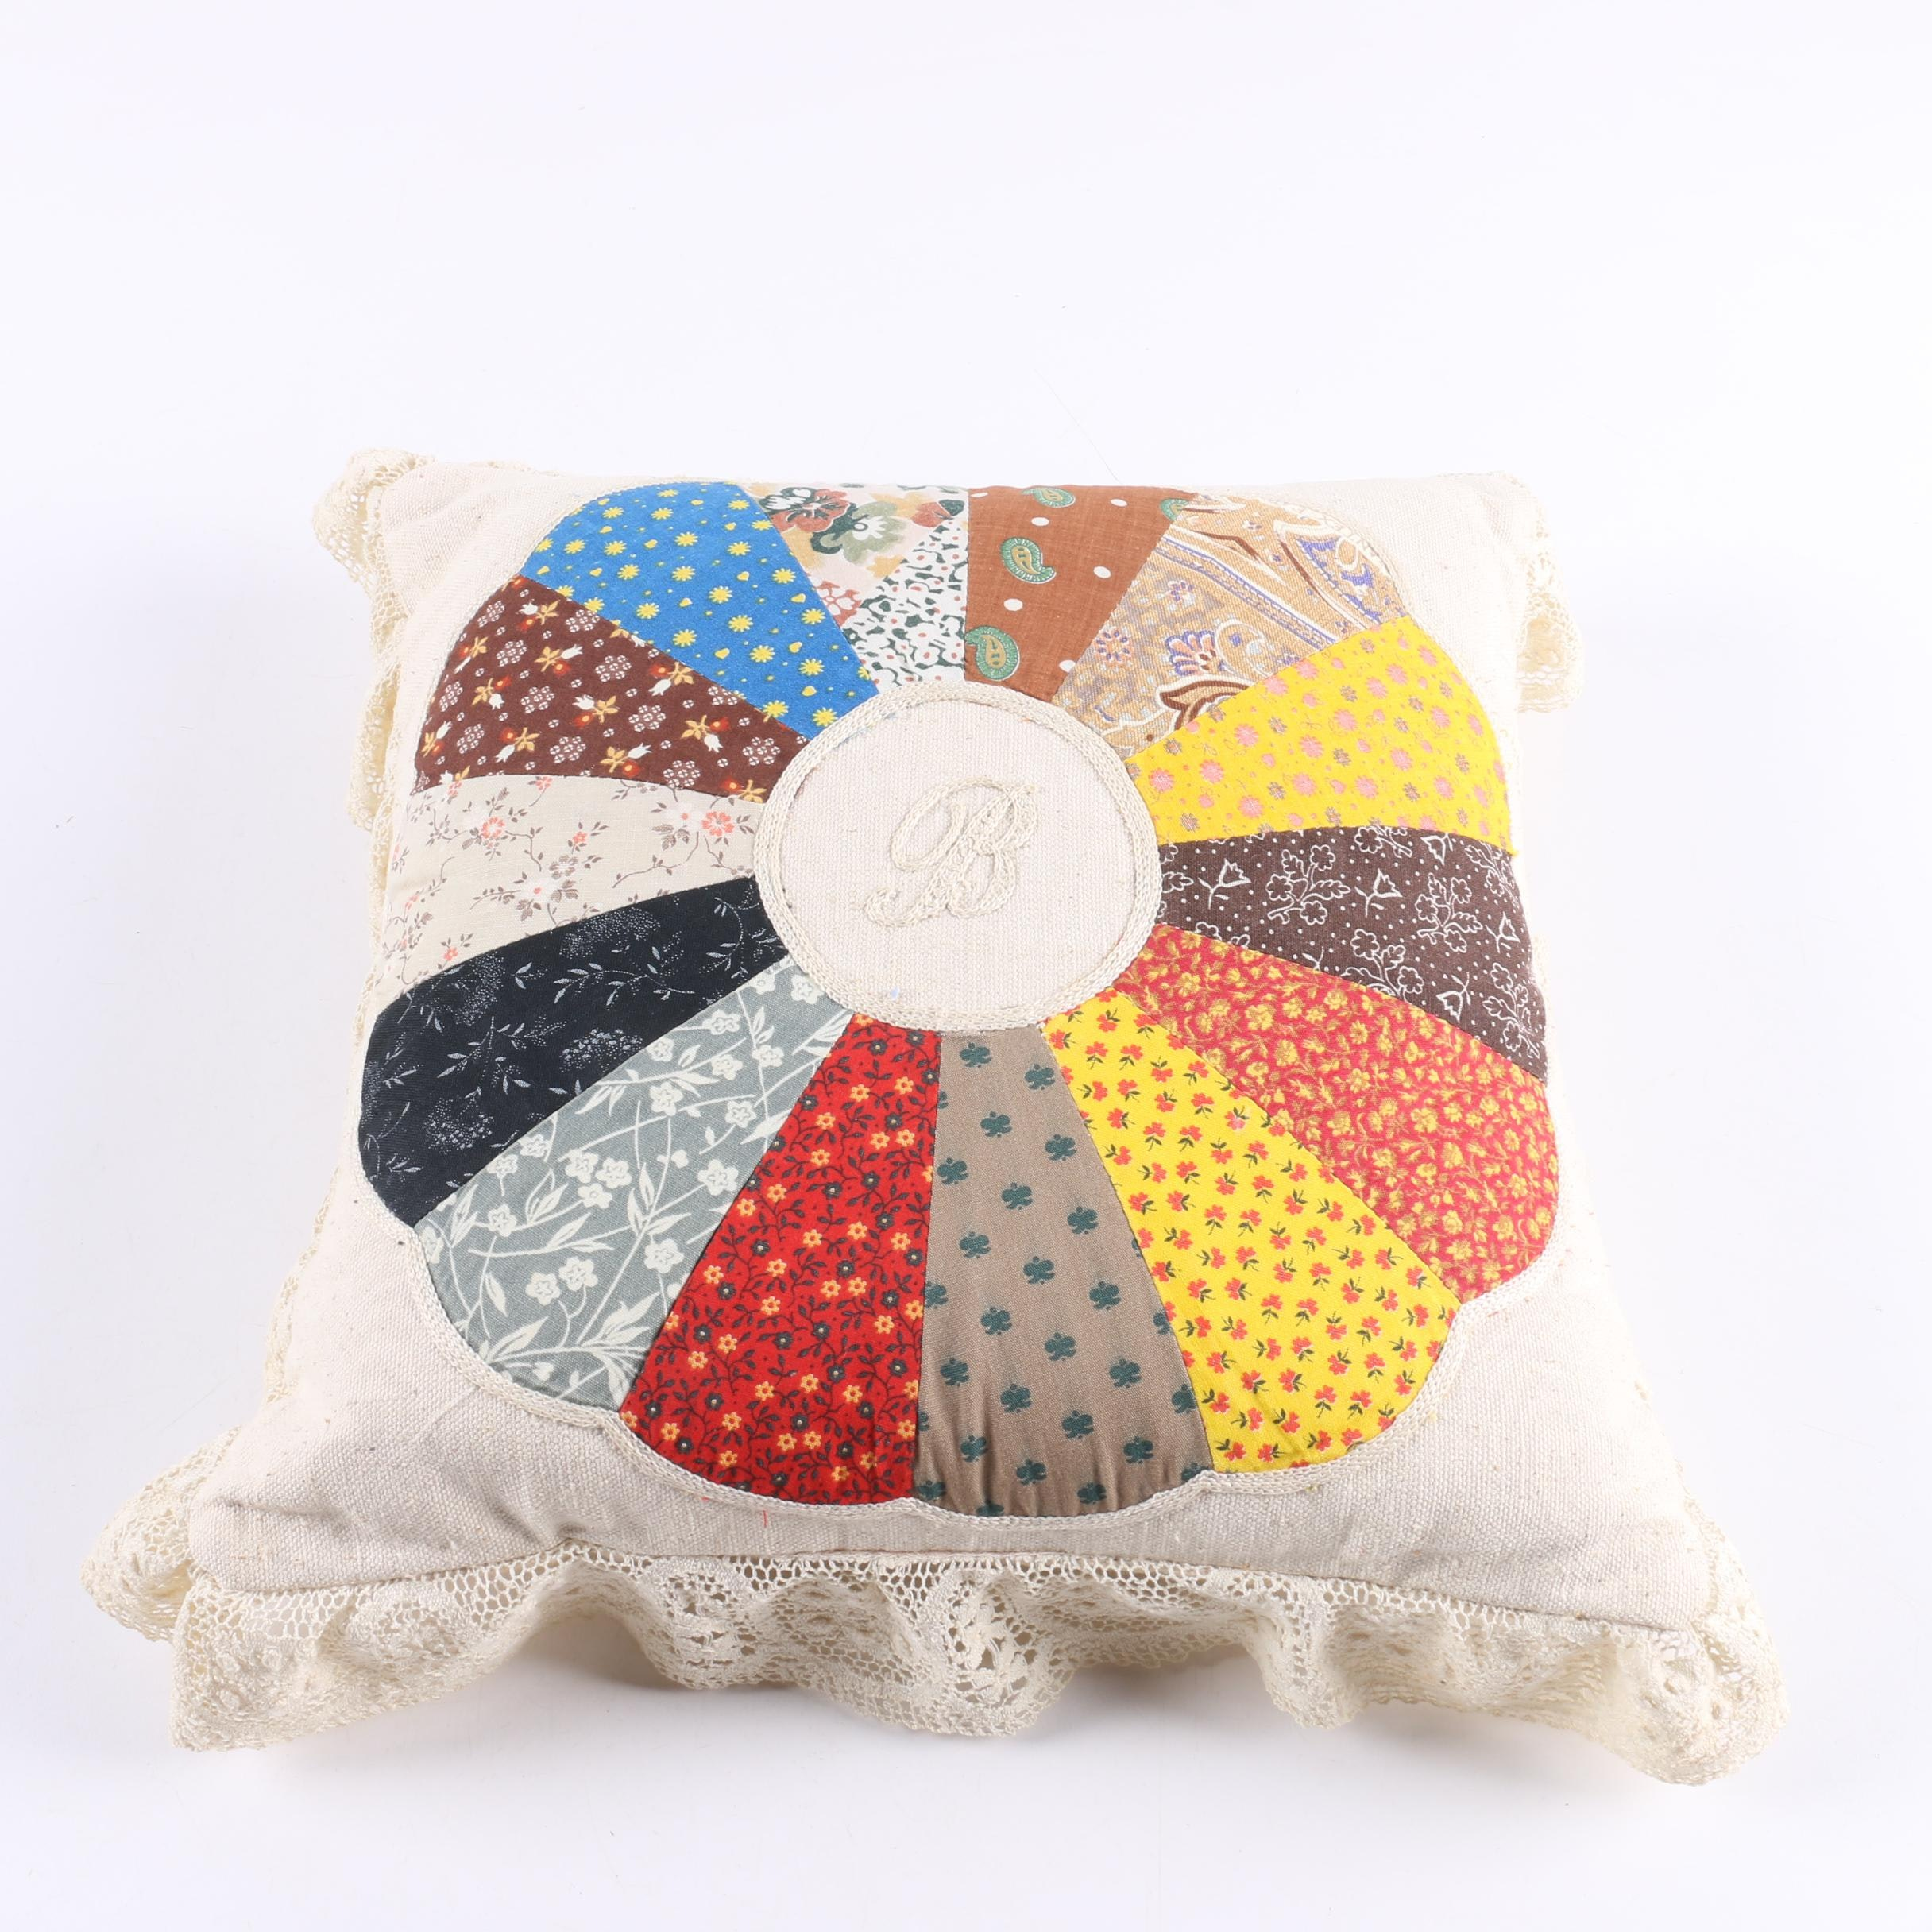 Patchwork Quilted and Lace Trimmed Accent Pillows